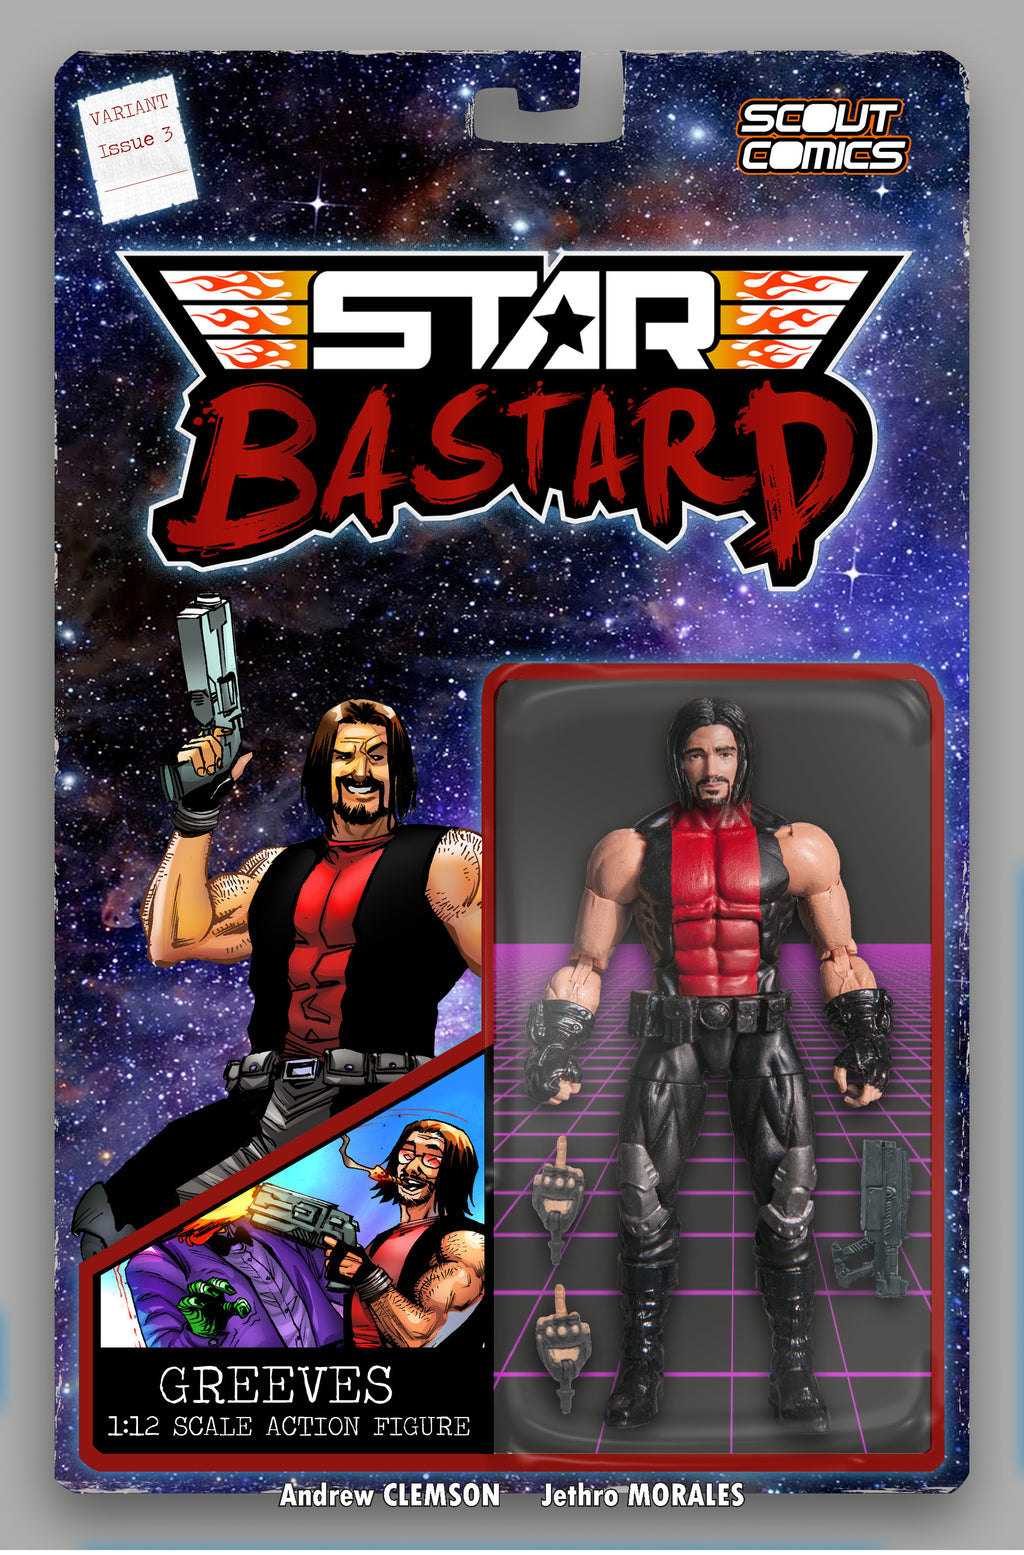 Star Bastard #3 - Webstore Exclusive Cover